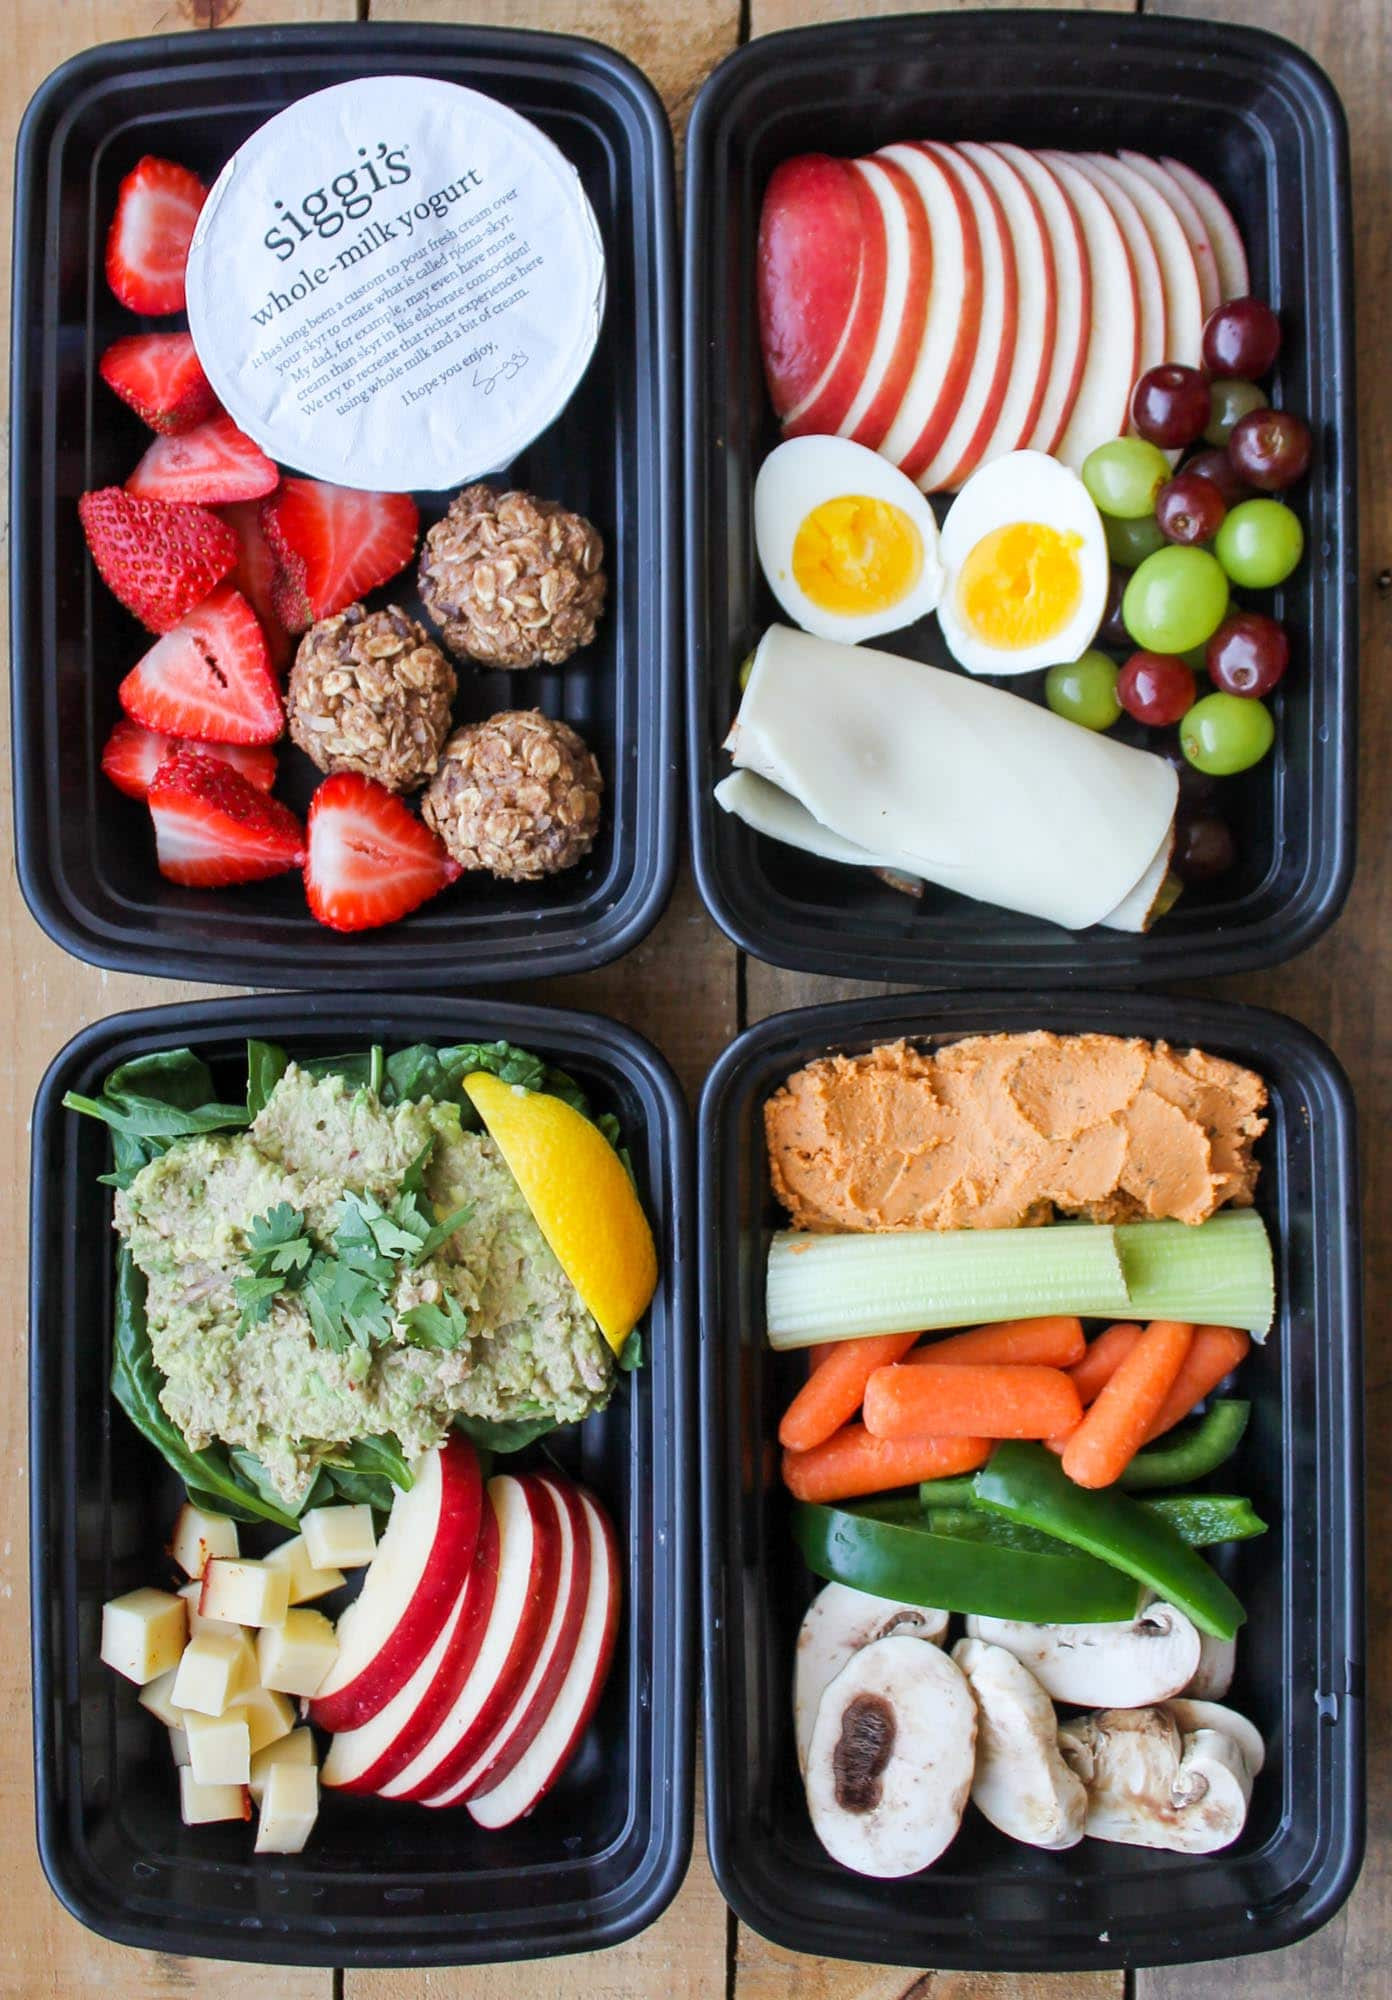 Healthy Grocery Snacks  4 Healthy Snack Box Ideas Smile Sandwich